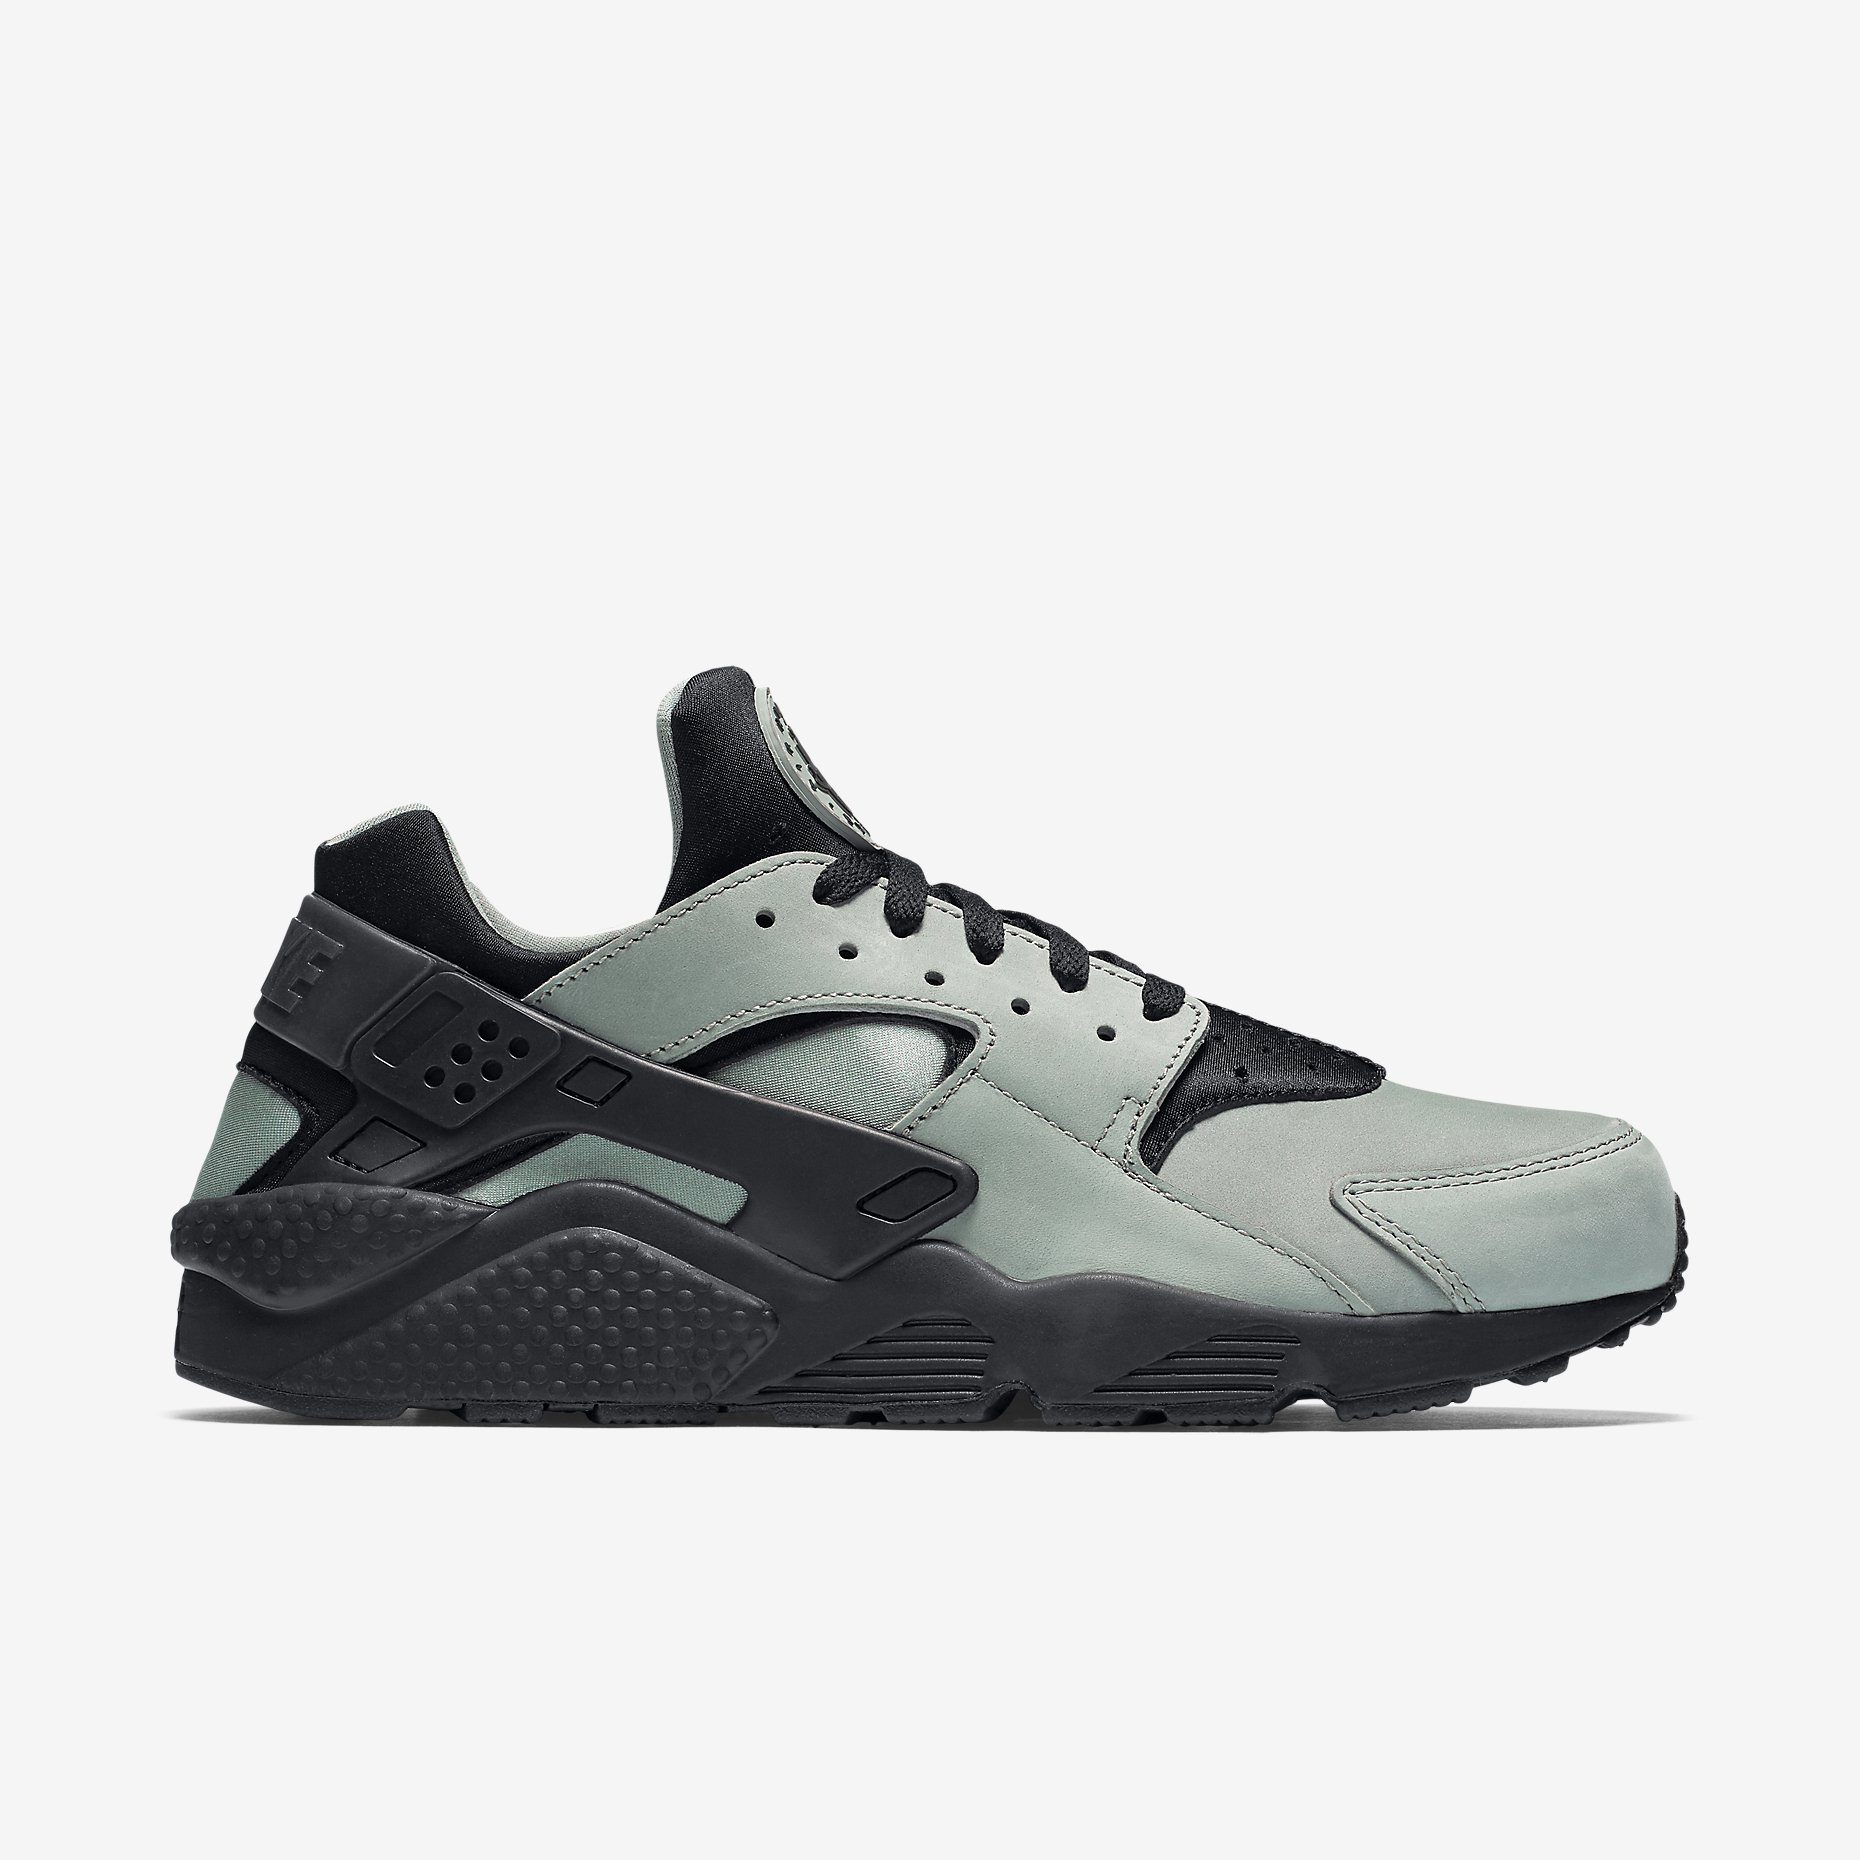 Huaraches are a perfect everyday shoe: comfortable and practical with great colours and lines and a touch of flair. These will very quickly become your signature sneakers.